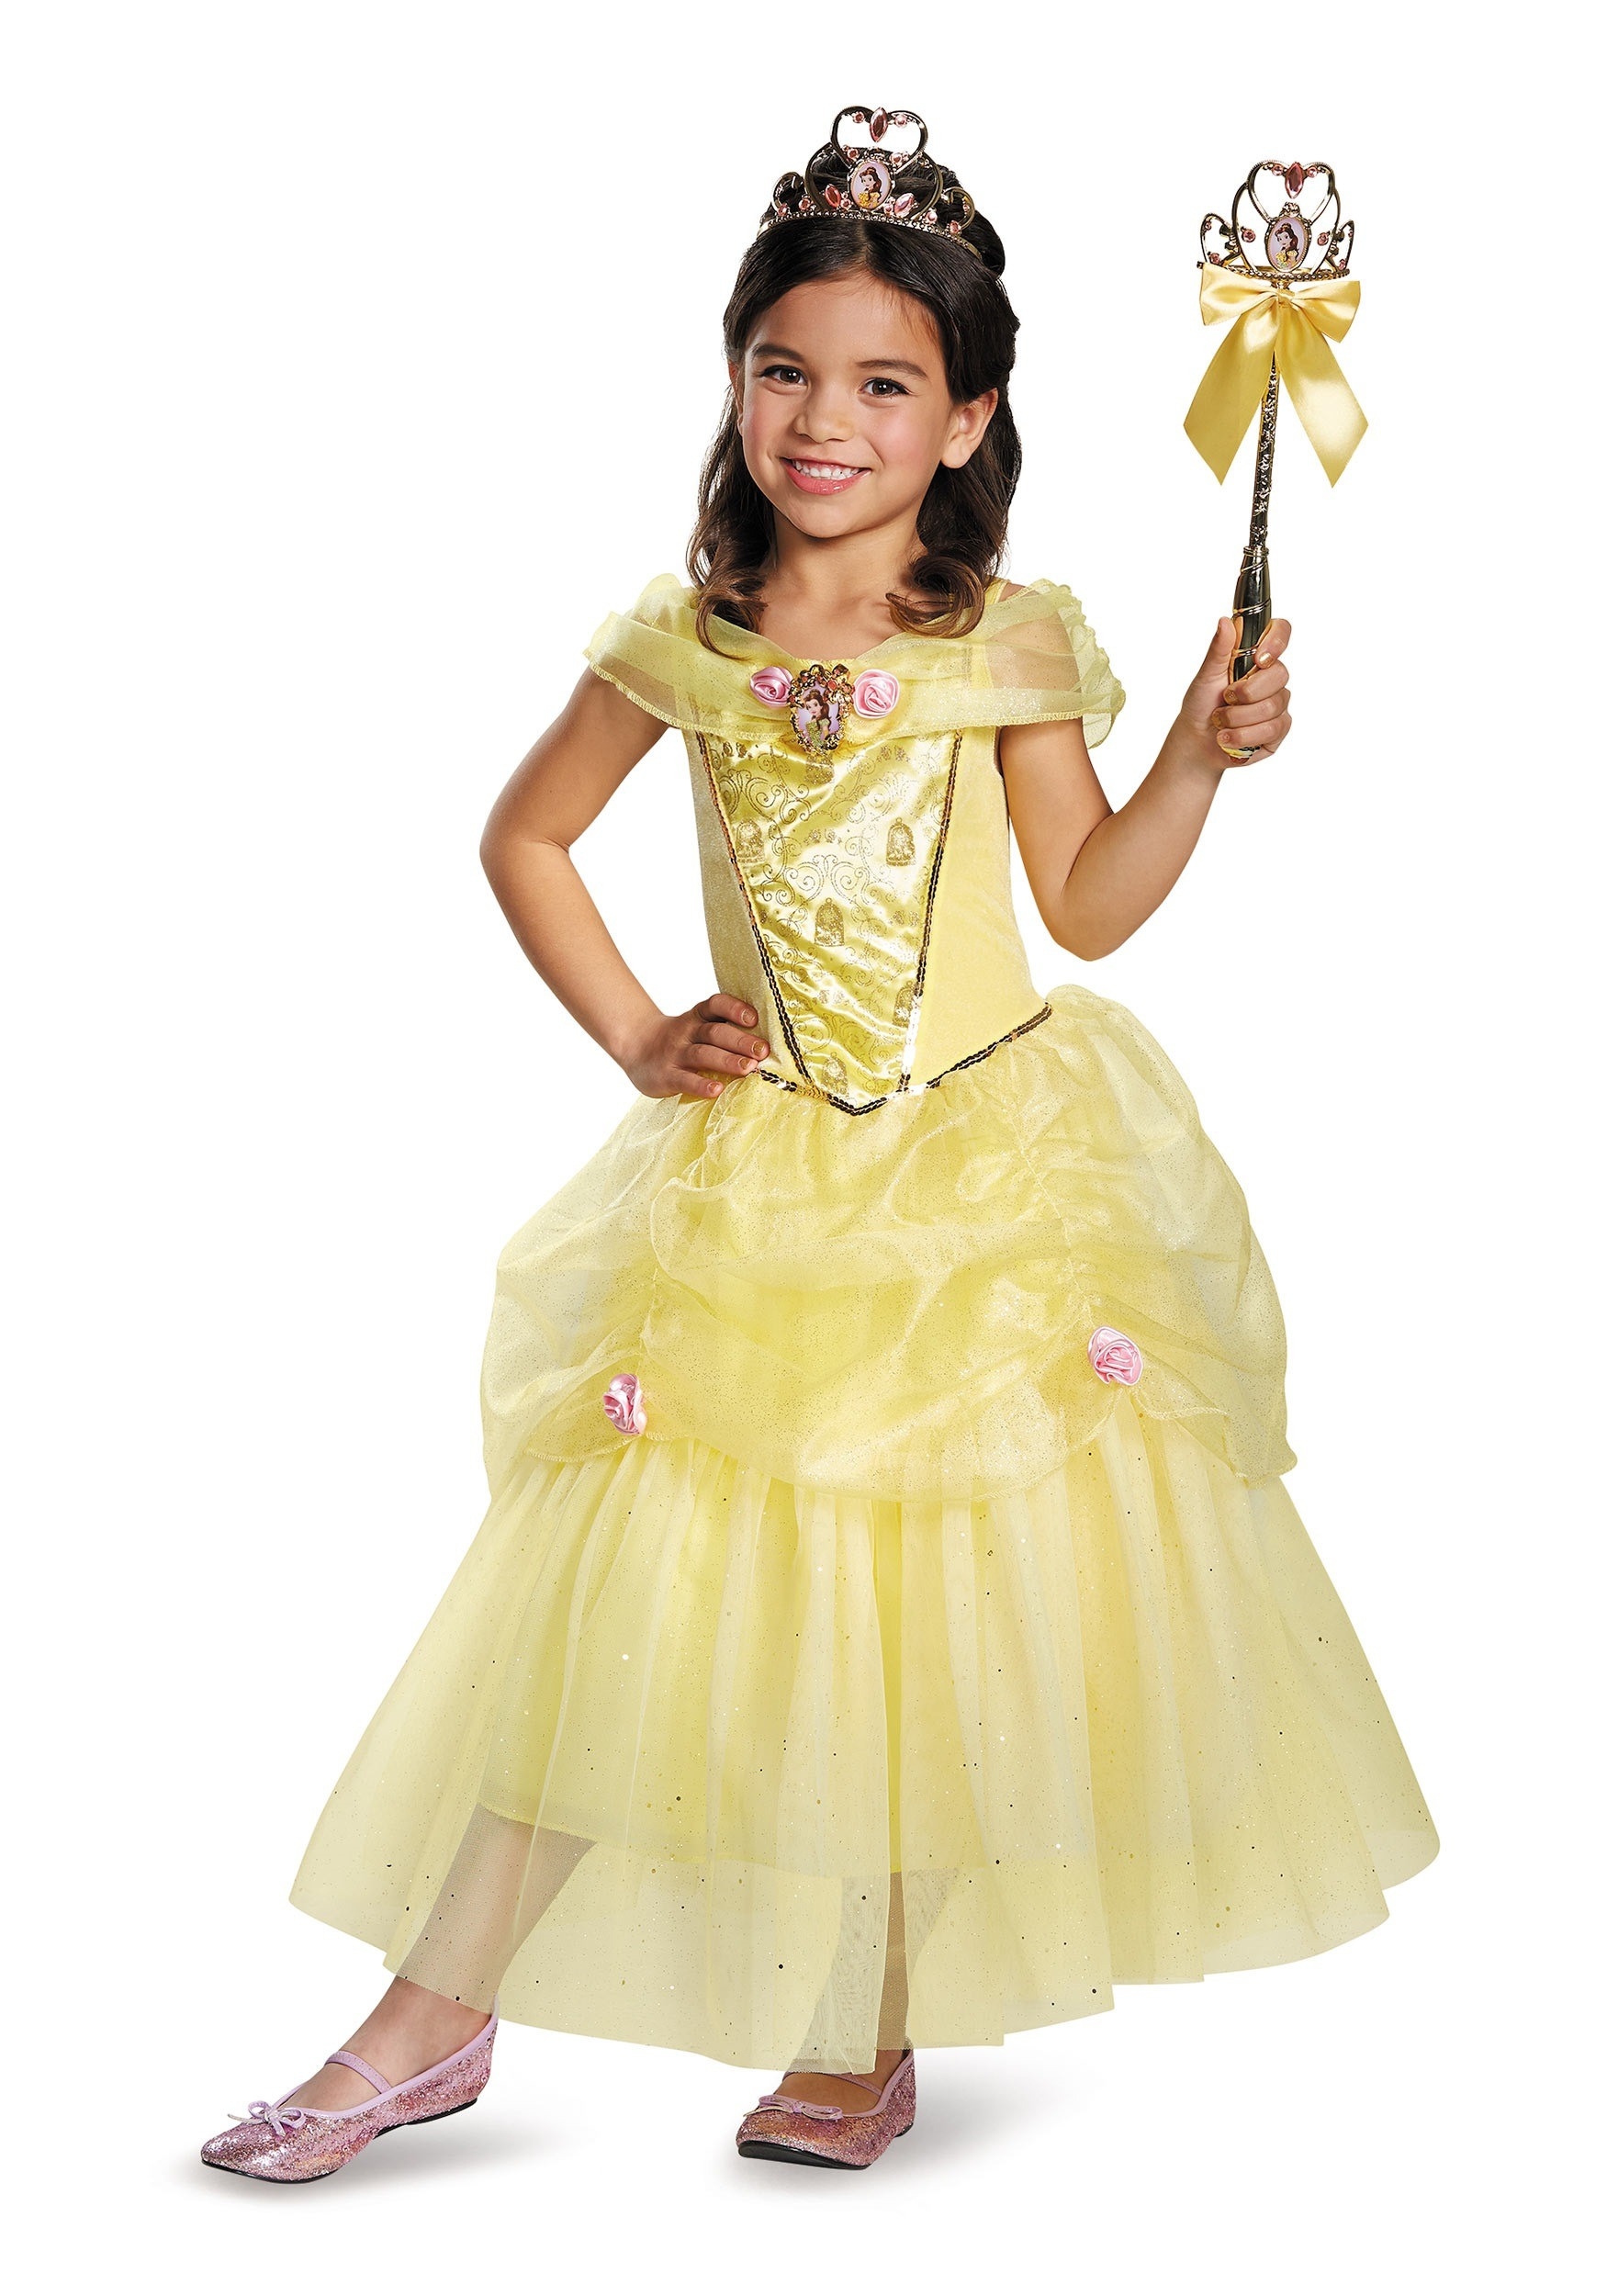 Disney Princess Costumes & Dresses - HalloweenCostumes.com